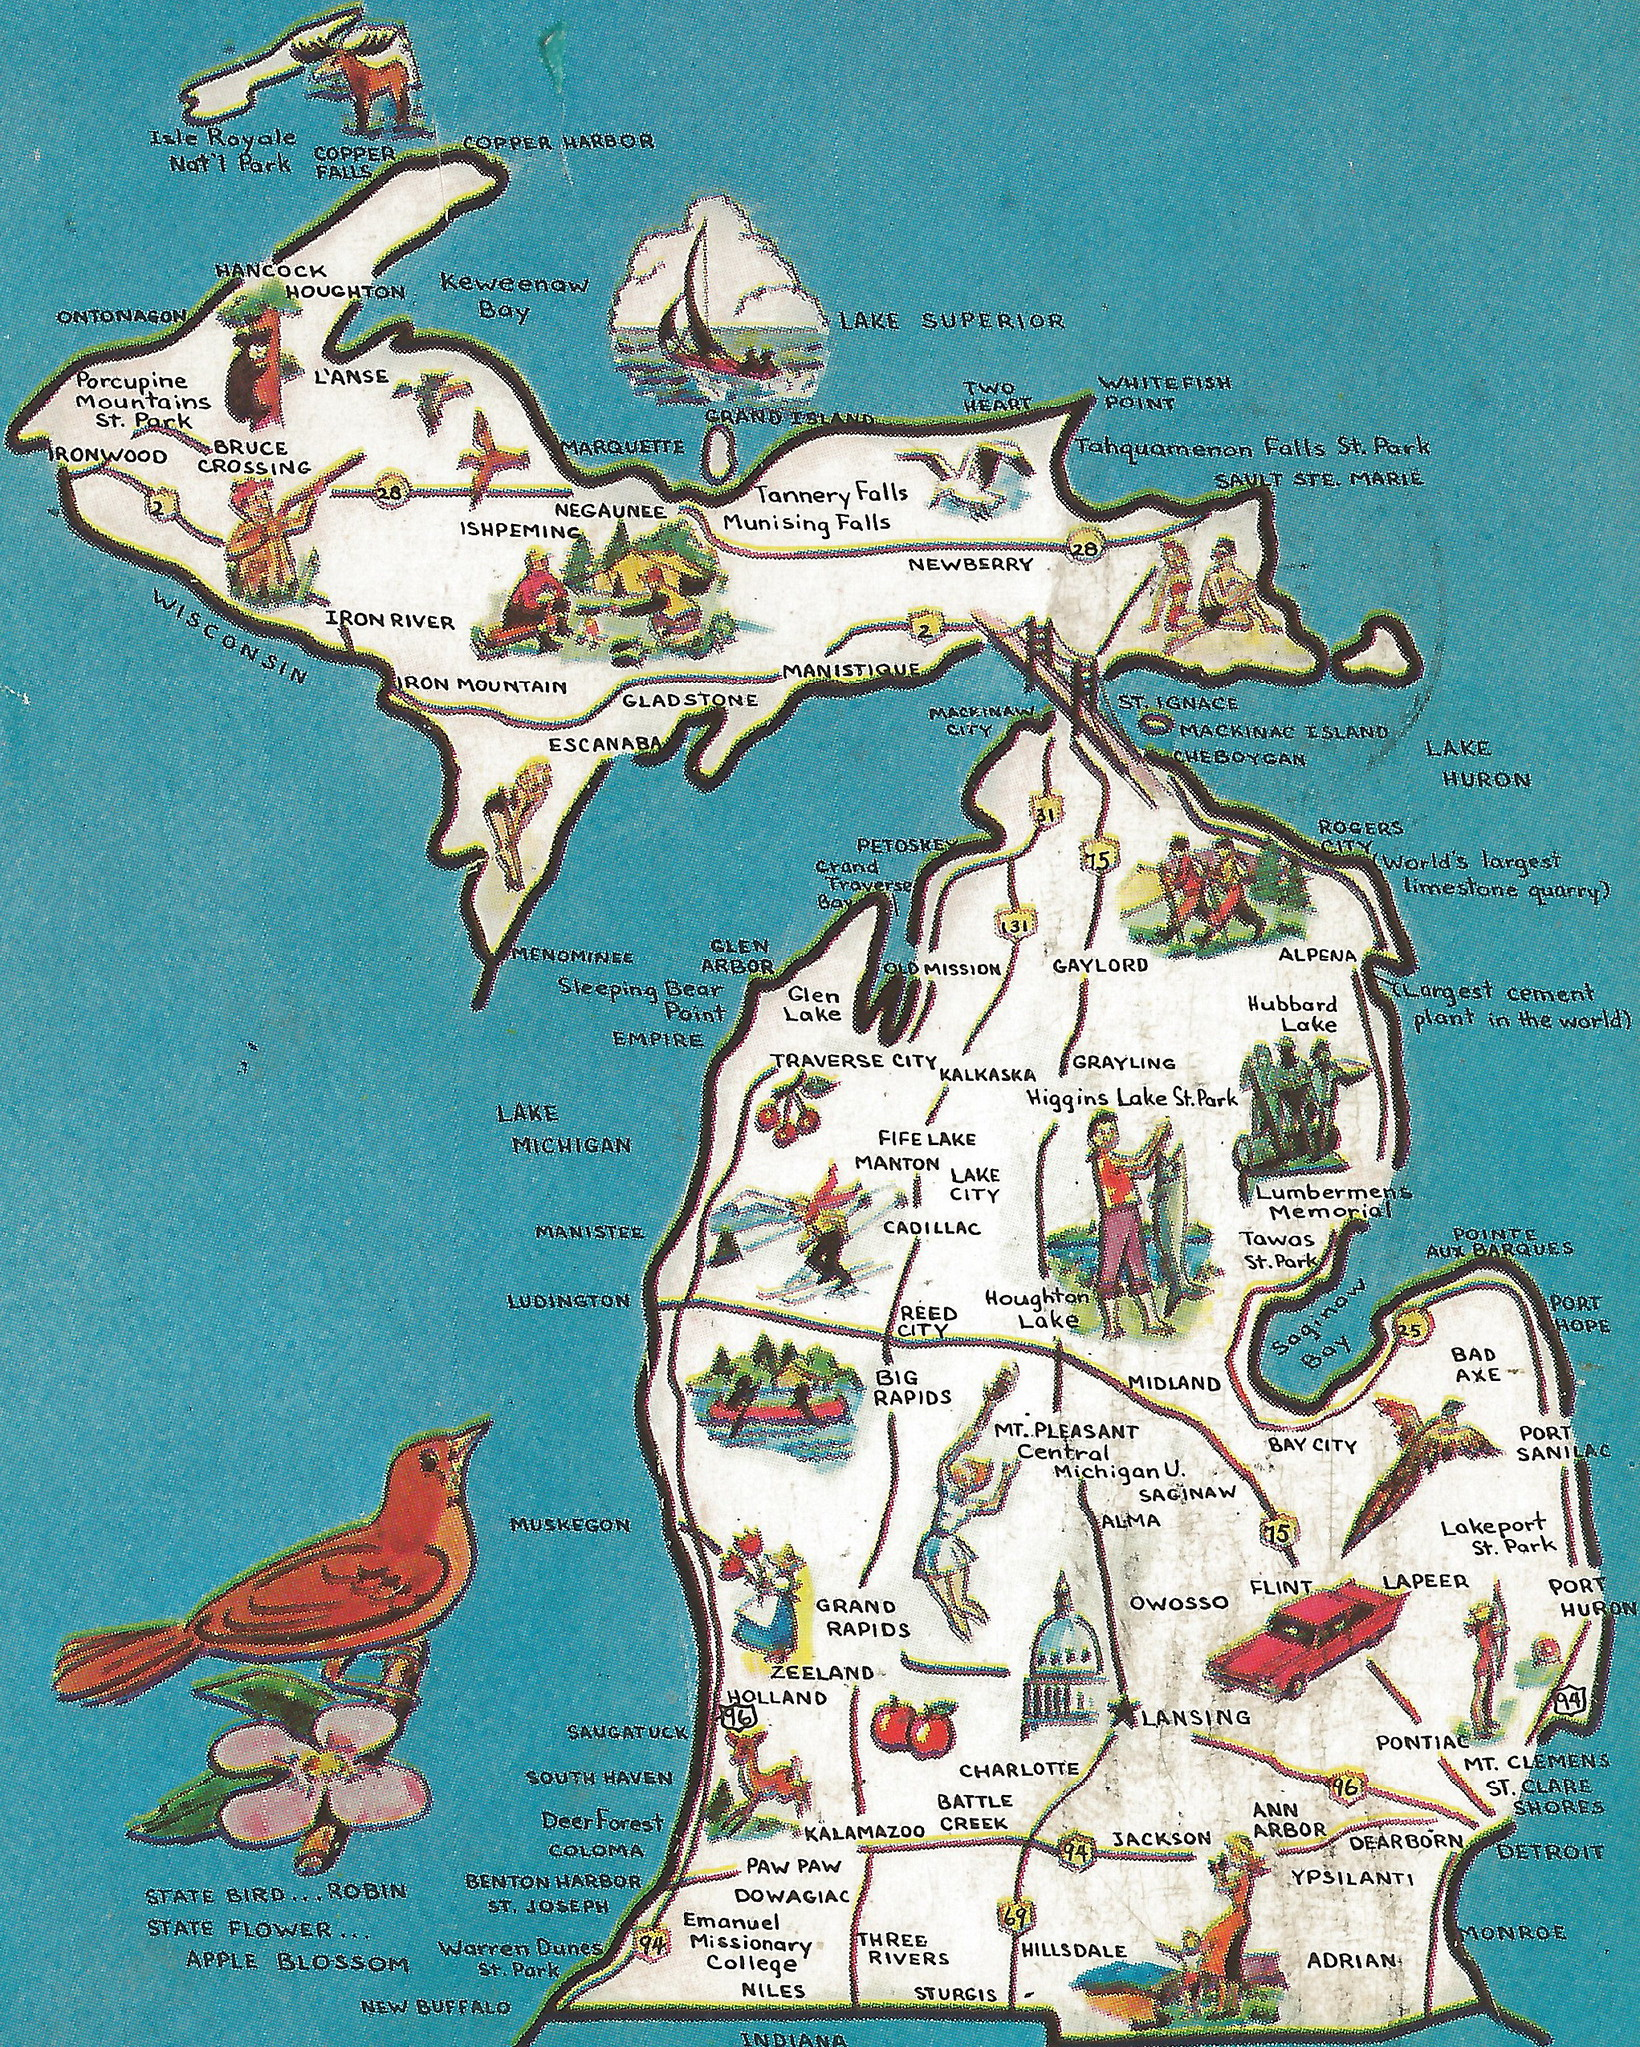 Michigan Tourism – Michigan Tourist Attractions Map